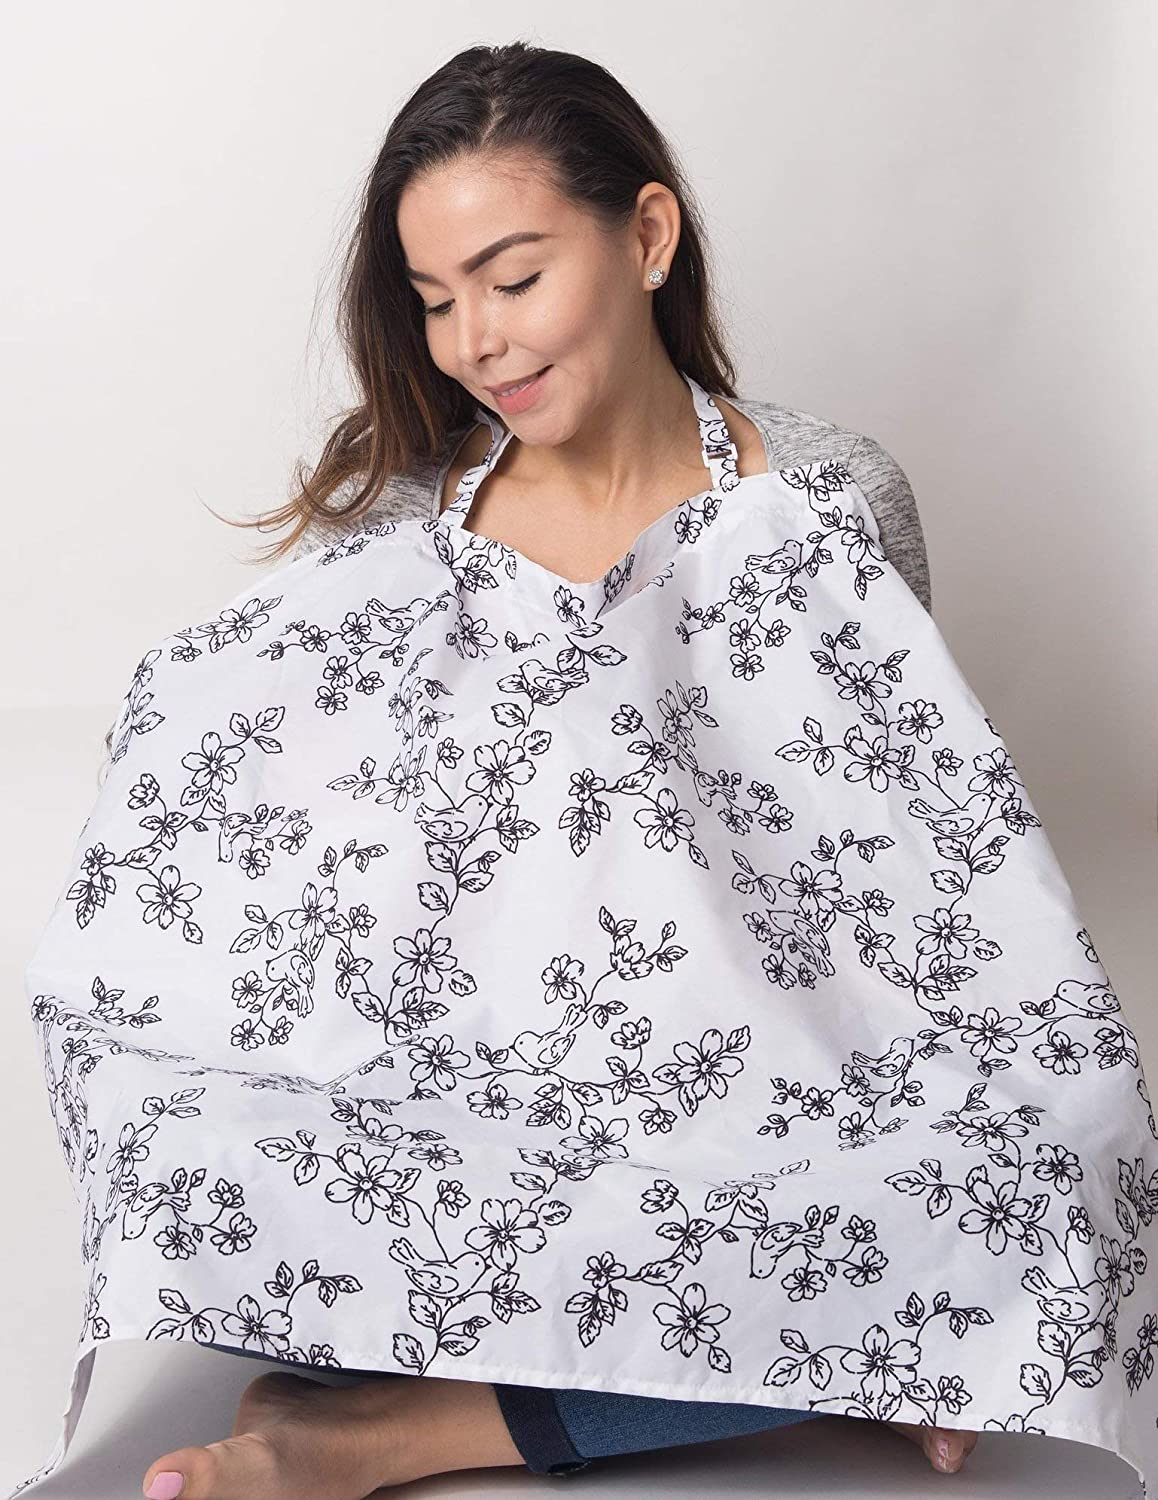 Damask 26 x 34 Little Me Nursing Cover with Interior Pockets